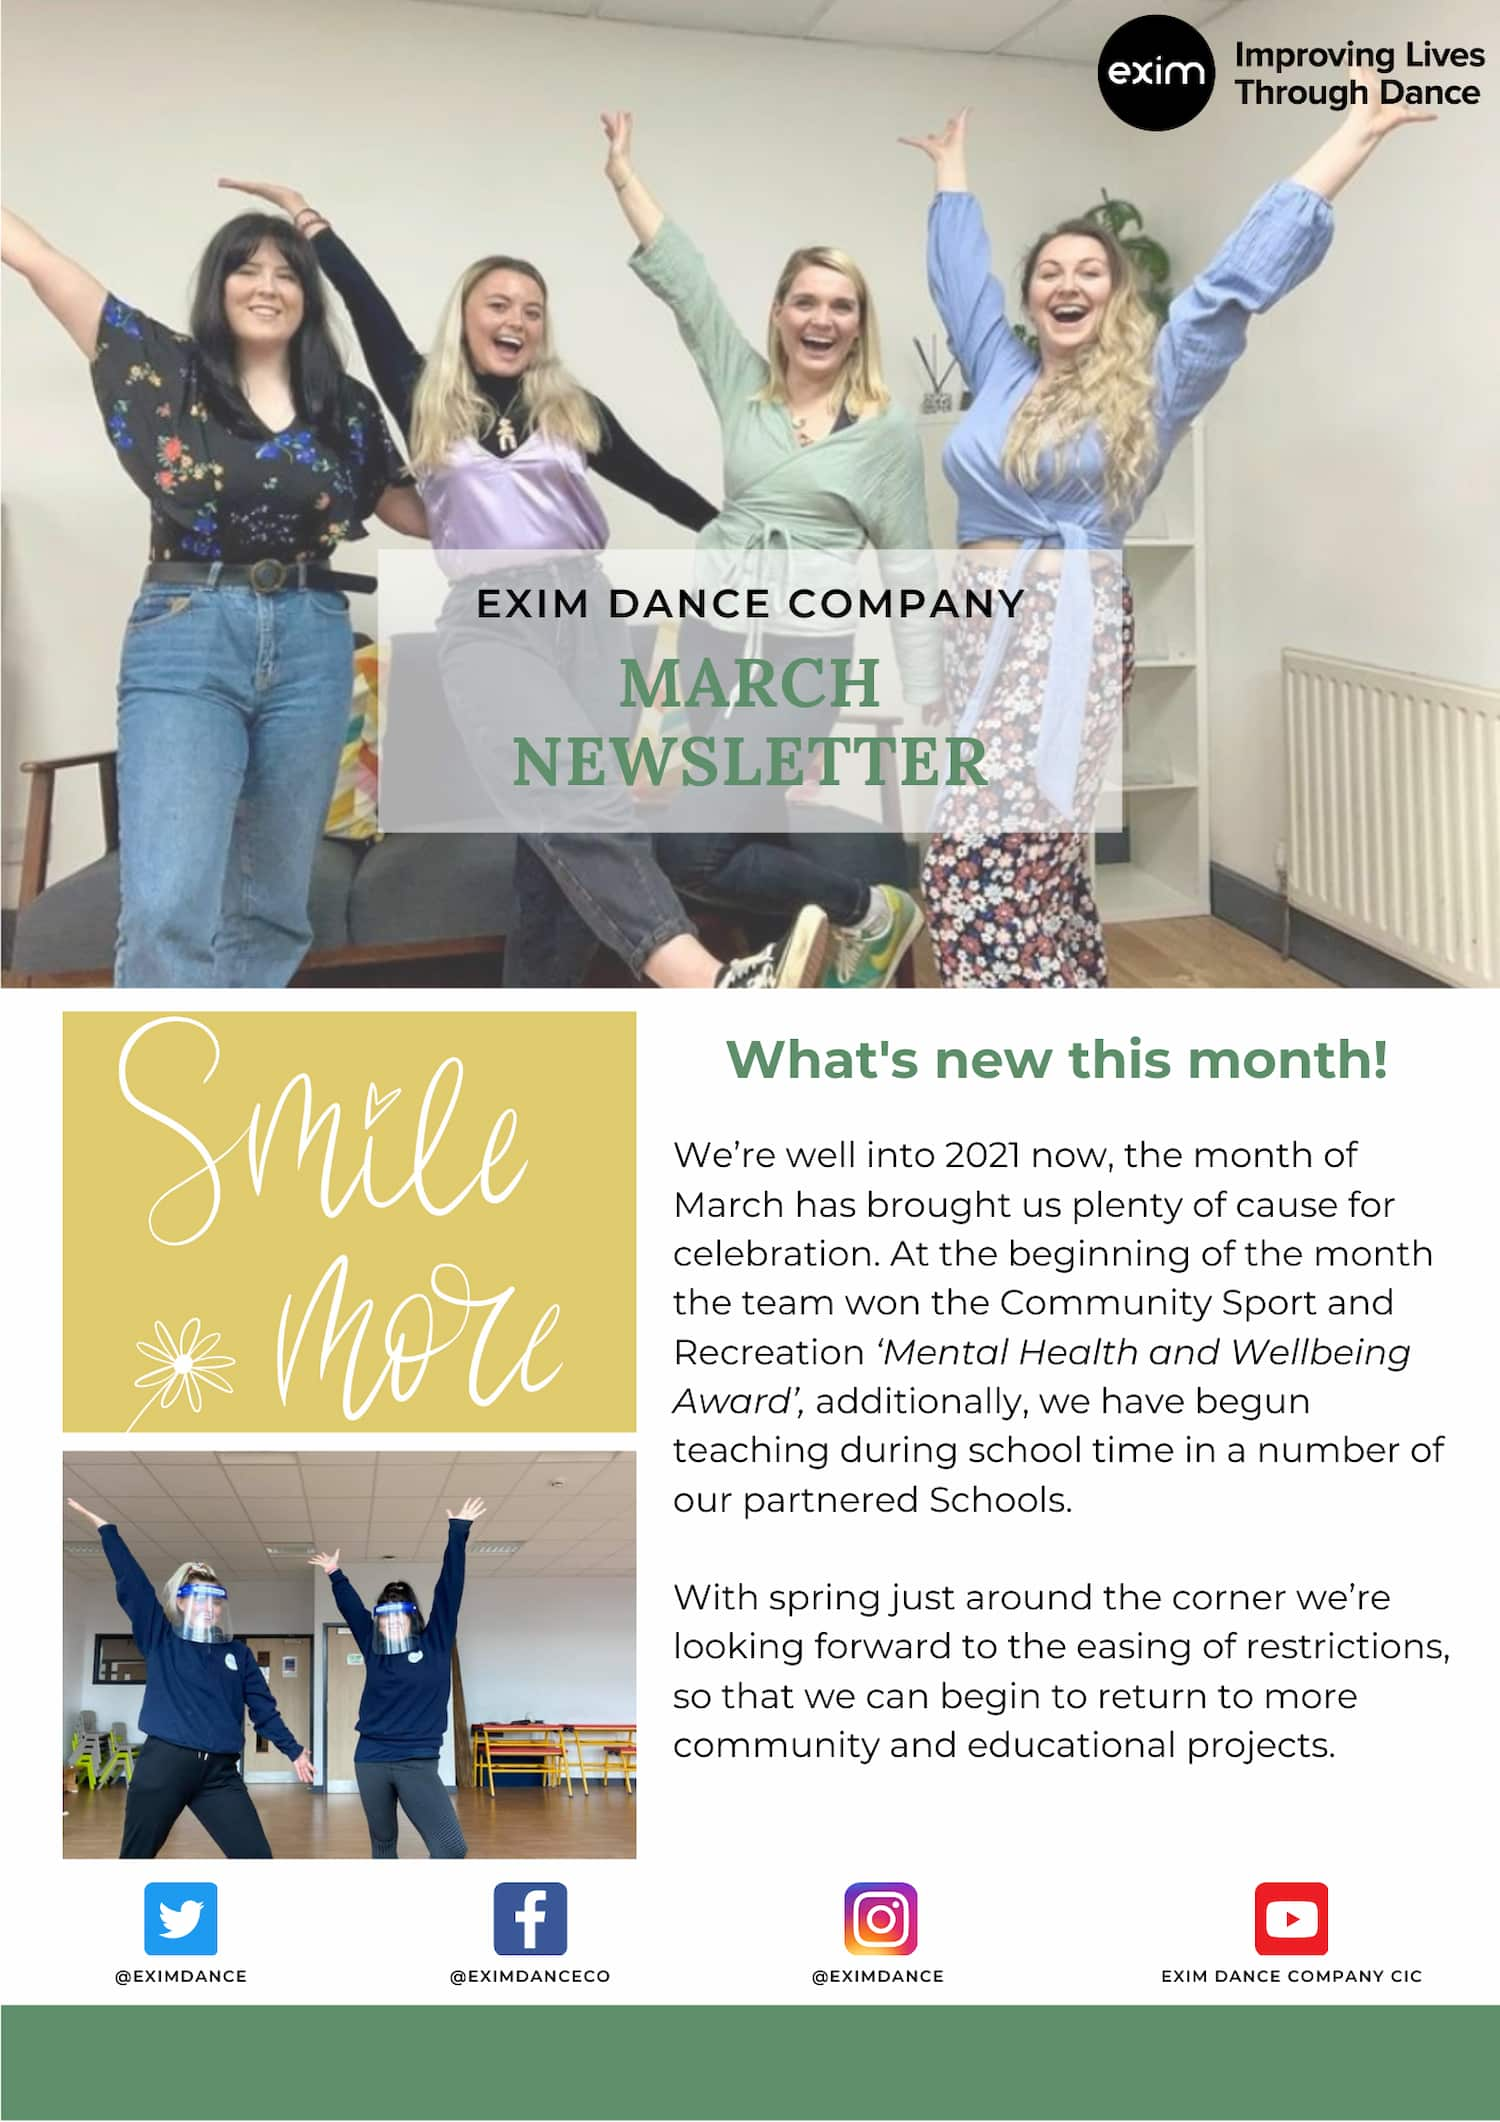 A Newsletter cover with a white background and green border. The centre image shows four of the core team from Exim in a line posing for a photo. In the image they are smiling and celebrating with their arms raised and legs extended. The next image on the left hand side is a calligraphy created by Kaitlyn it has a yellow background and white text which says 'Smile more' the image underneath is of Hayley and Chloe in a school ready to teach, they are both wearing navy Exim jumper's & black trousers.